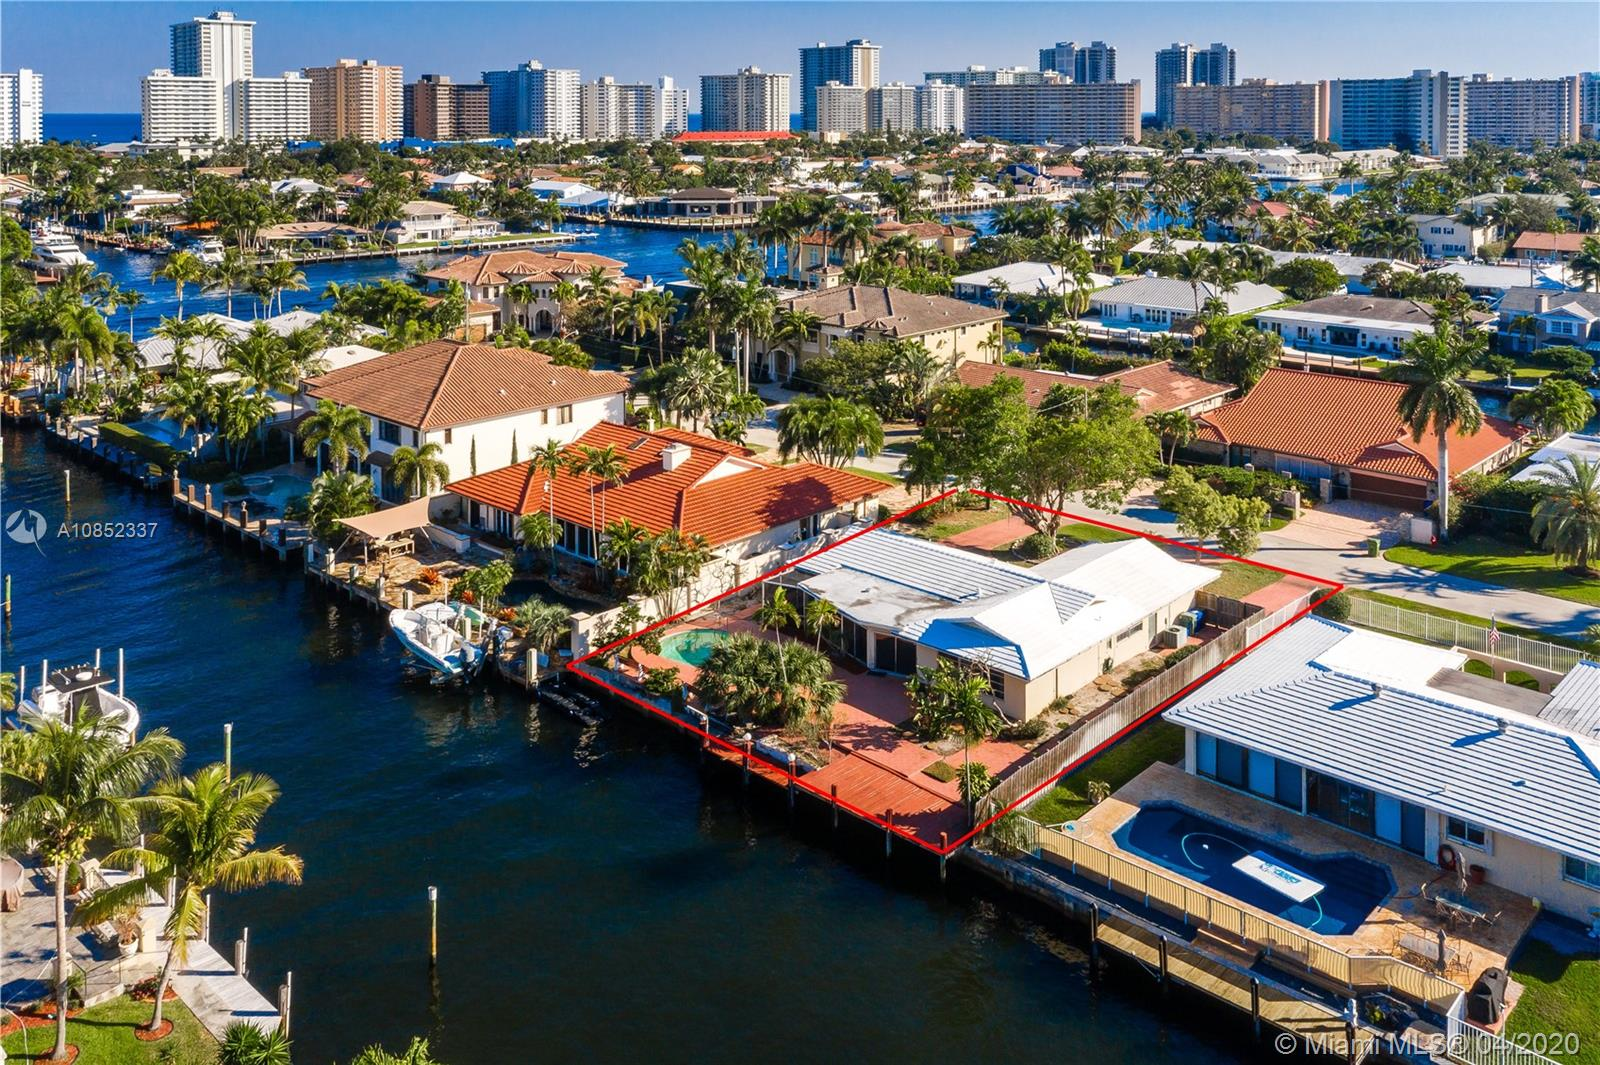 JUST LISTED: BEST PRICED WATERFRONT LOT IN CORAL RIDGE COUNTRY CLUB. ONLY 4 HOUSES IN FROM THE INTRACOASTAL ON AN 85' LOT. VERY WIDE CANAL WITH NO FIXED BRIDGES. CORAL RIDGE HAS GREAT SCHOOLS AND IS CENTRALLY LOCATED IN EAST FT. LAUDERDALE. BUILD YOUR NEW DREAM HOME UP TO 5,000 S.F. IN ONE OF THE MOST DESIRED NEIGHBORHOODS IN EAST FT. LAUDERDALE. LET'S MAKE A DEAL!